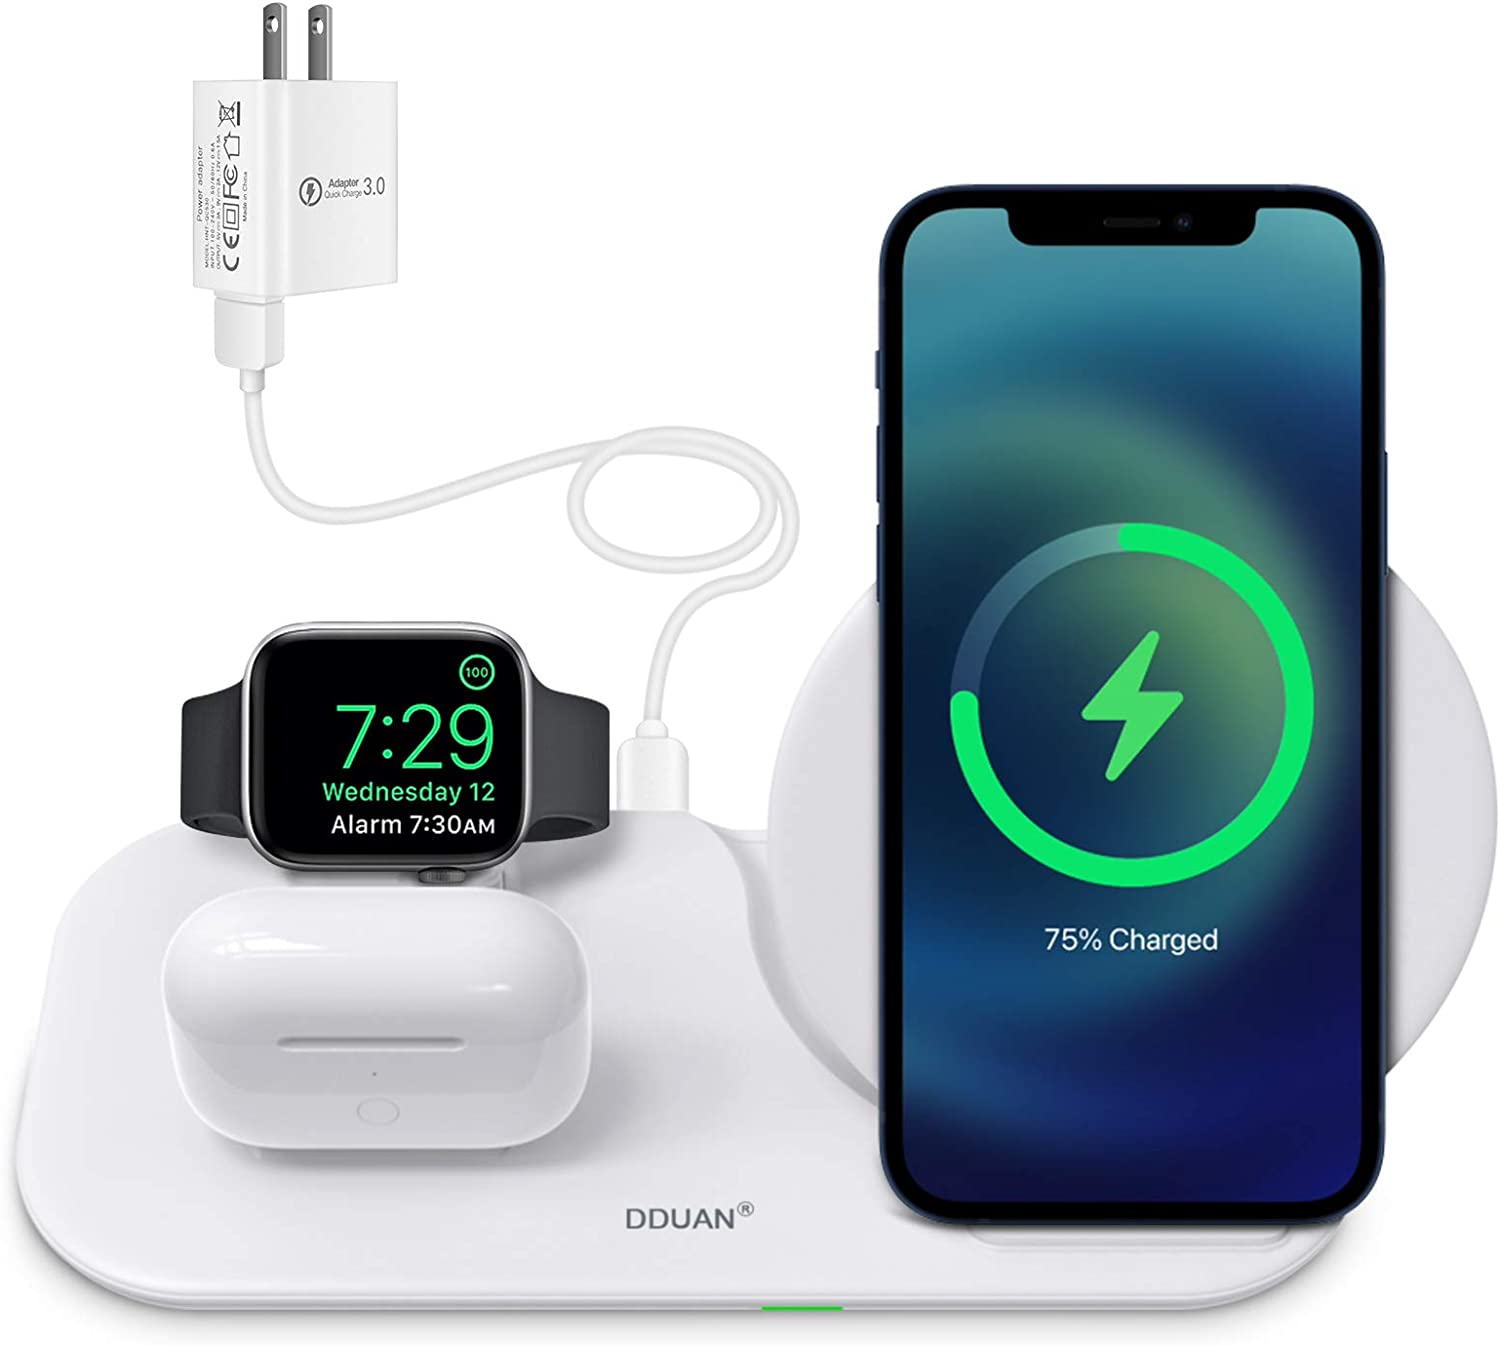 DDUAN Wireless Charger, 3 in 1 Qi Fast Charging Station Dock Compatible for Apple Watch, AirPods Pro/1/2, Charging Stand for iPhone 12/11/Pro/Max/XR/XS/XS Max/X /8/8 Plus/Samsung(18W Adapter Included)